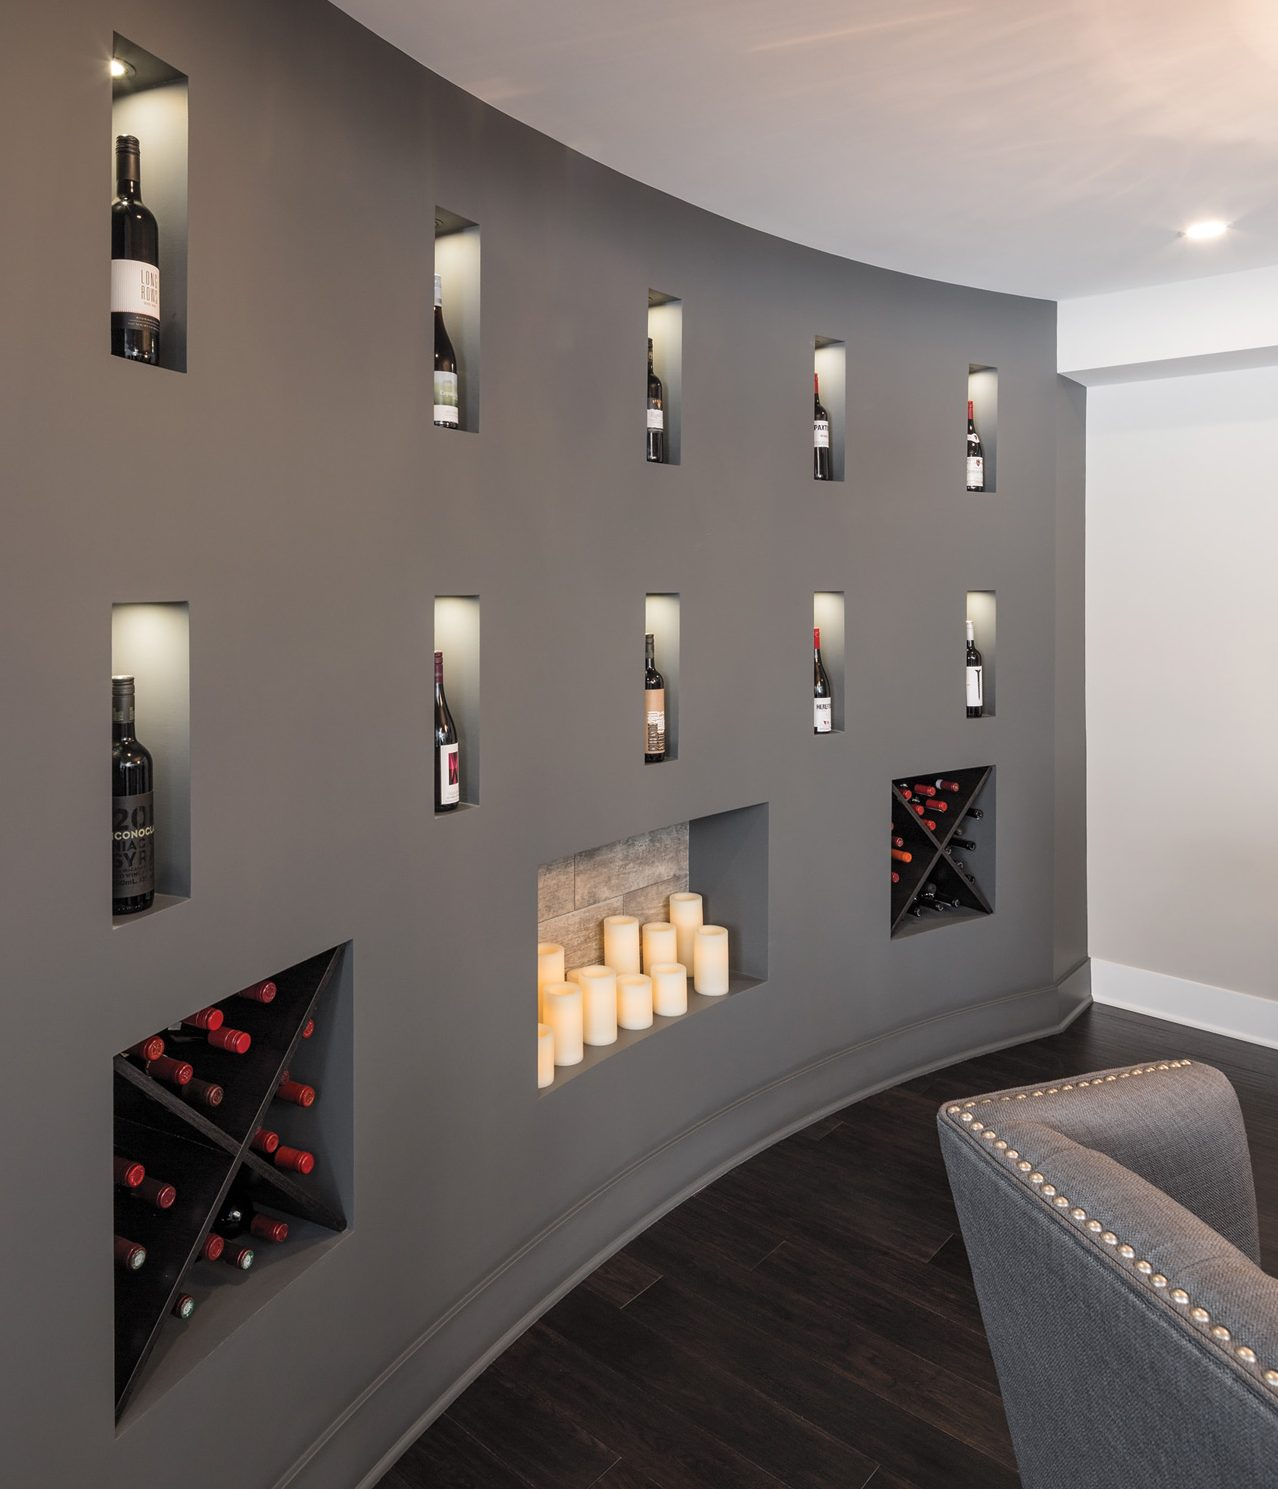 Lit Palette Design A Less Cave Like More Casual Wine Cellar Designed To Inspire